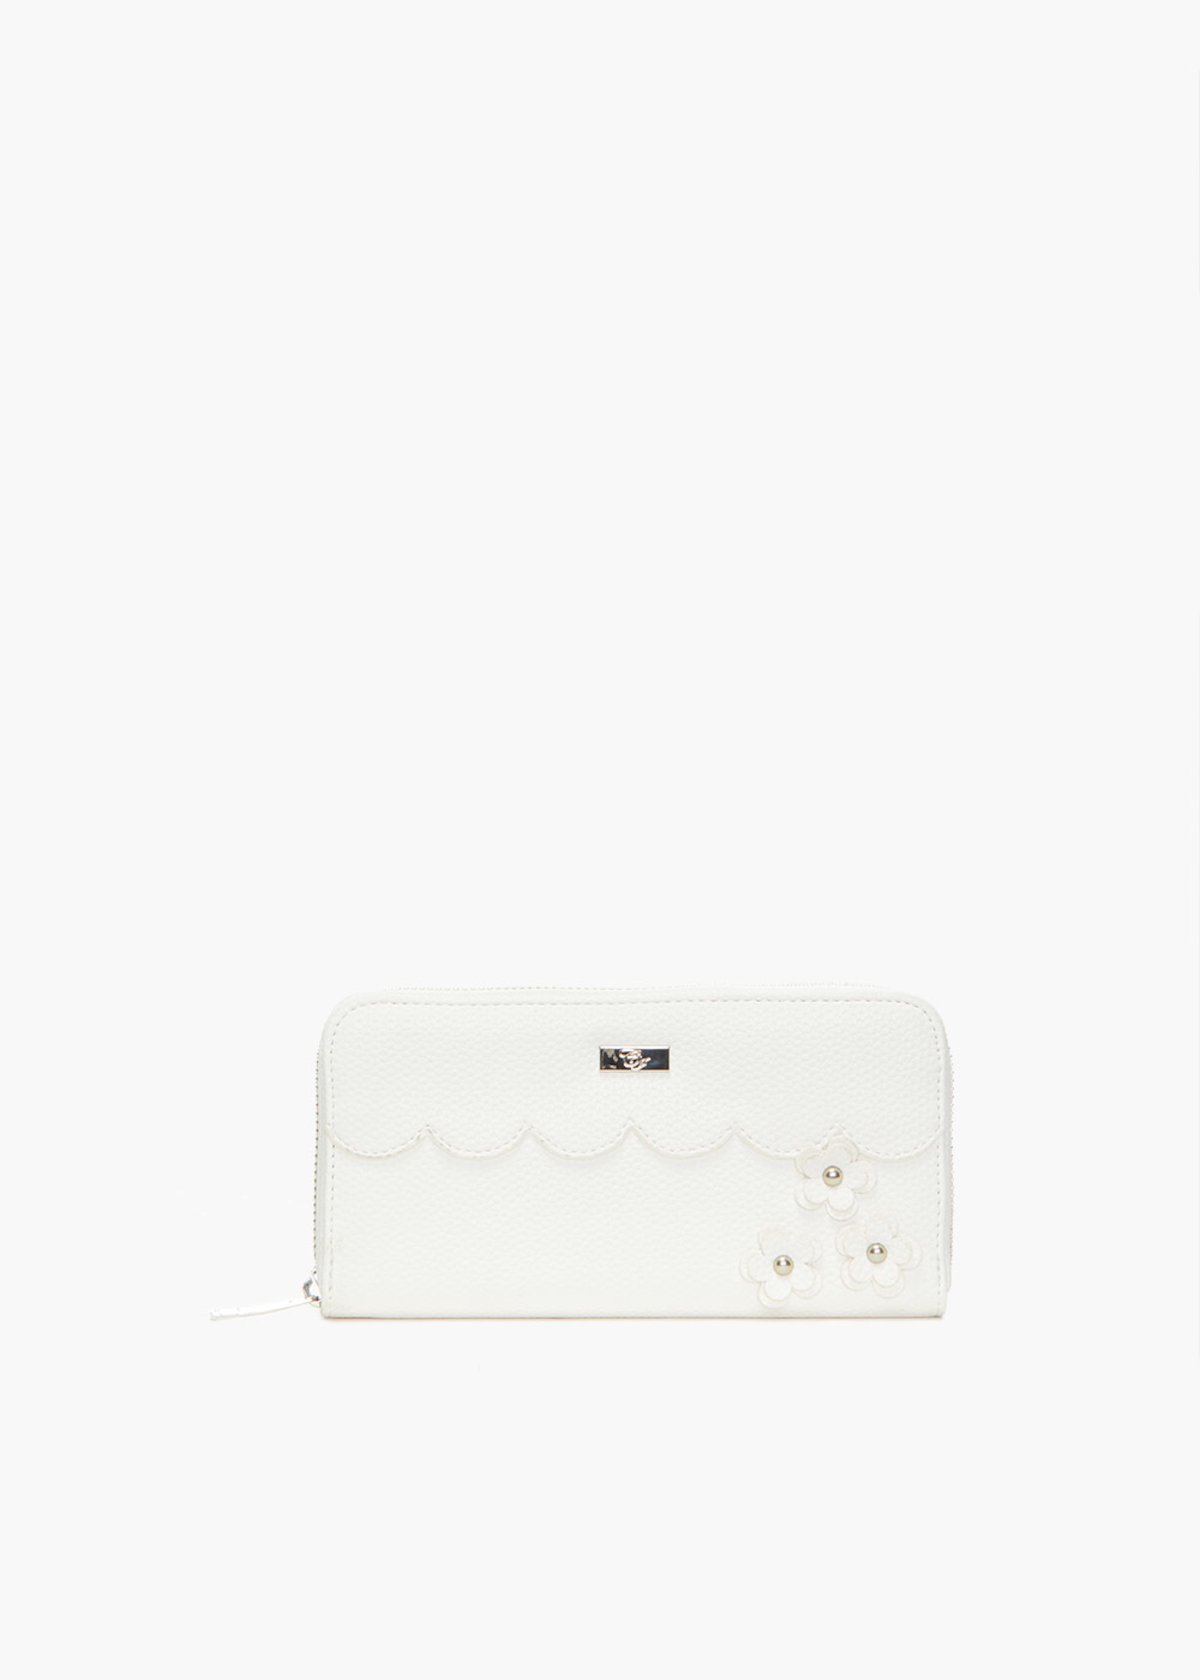 Placie faux leather wallet with flowers detail - White